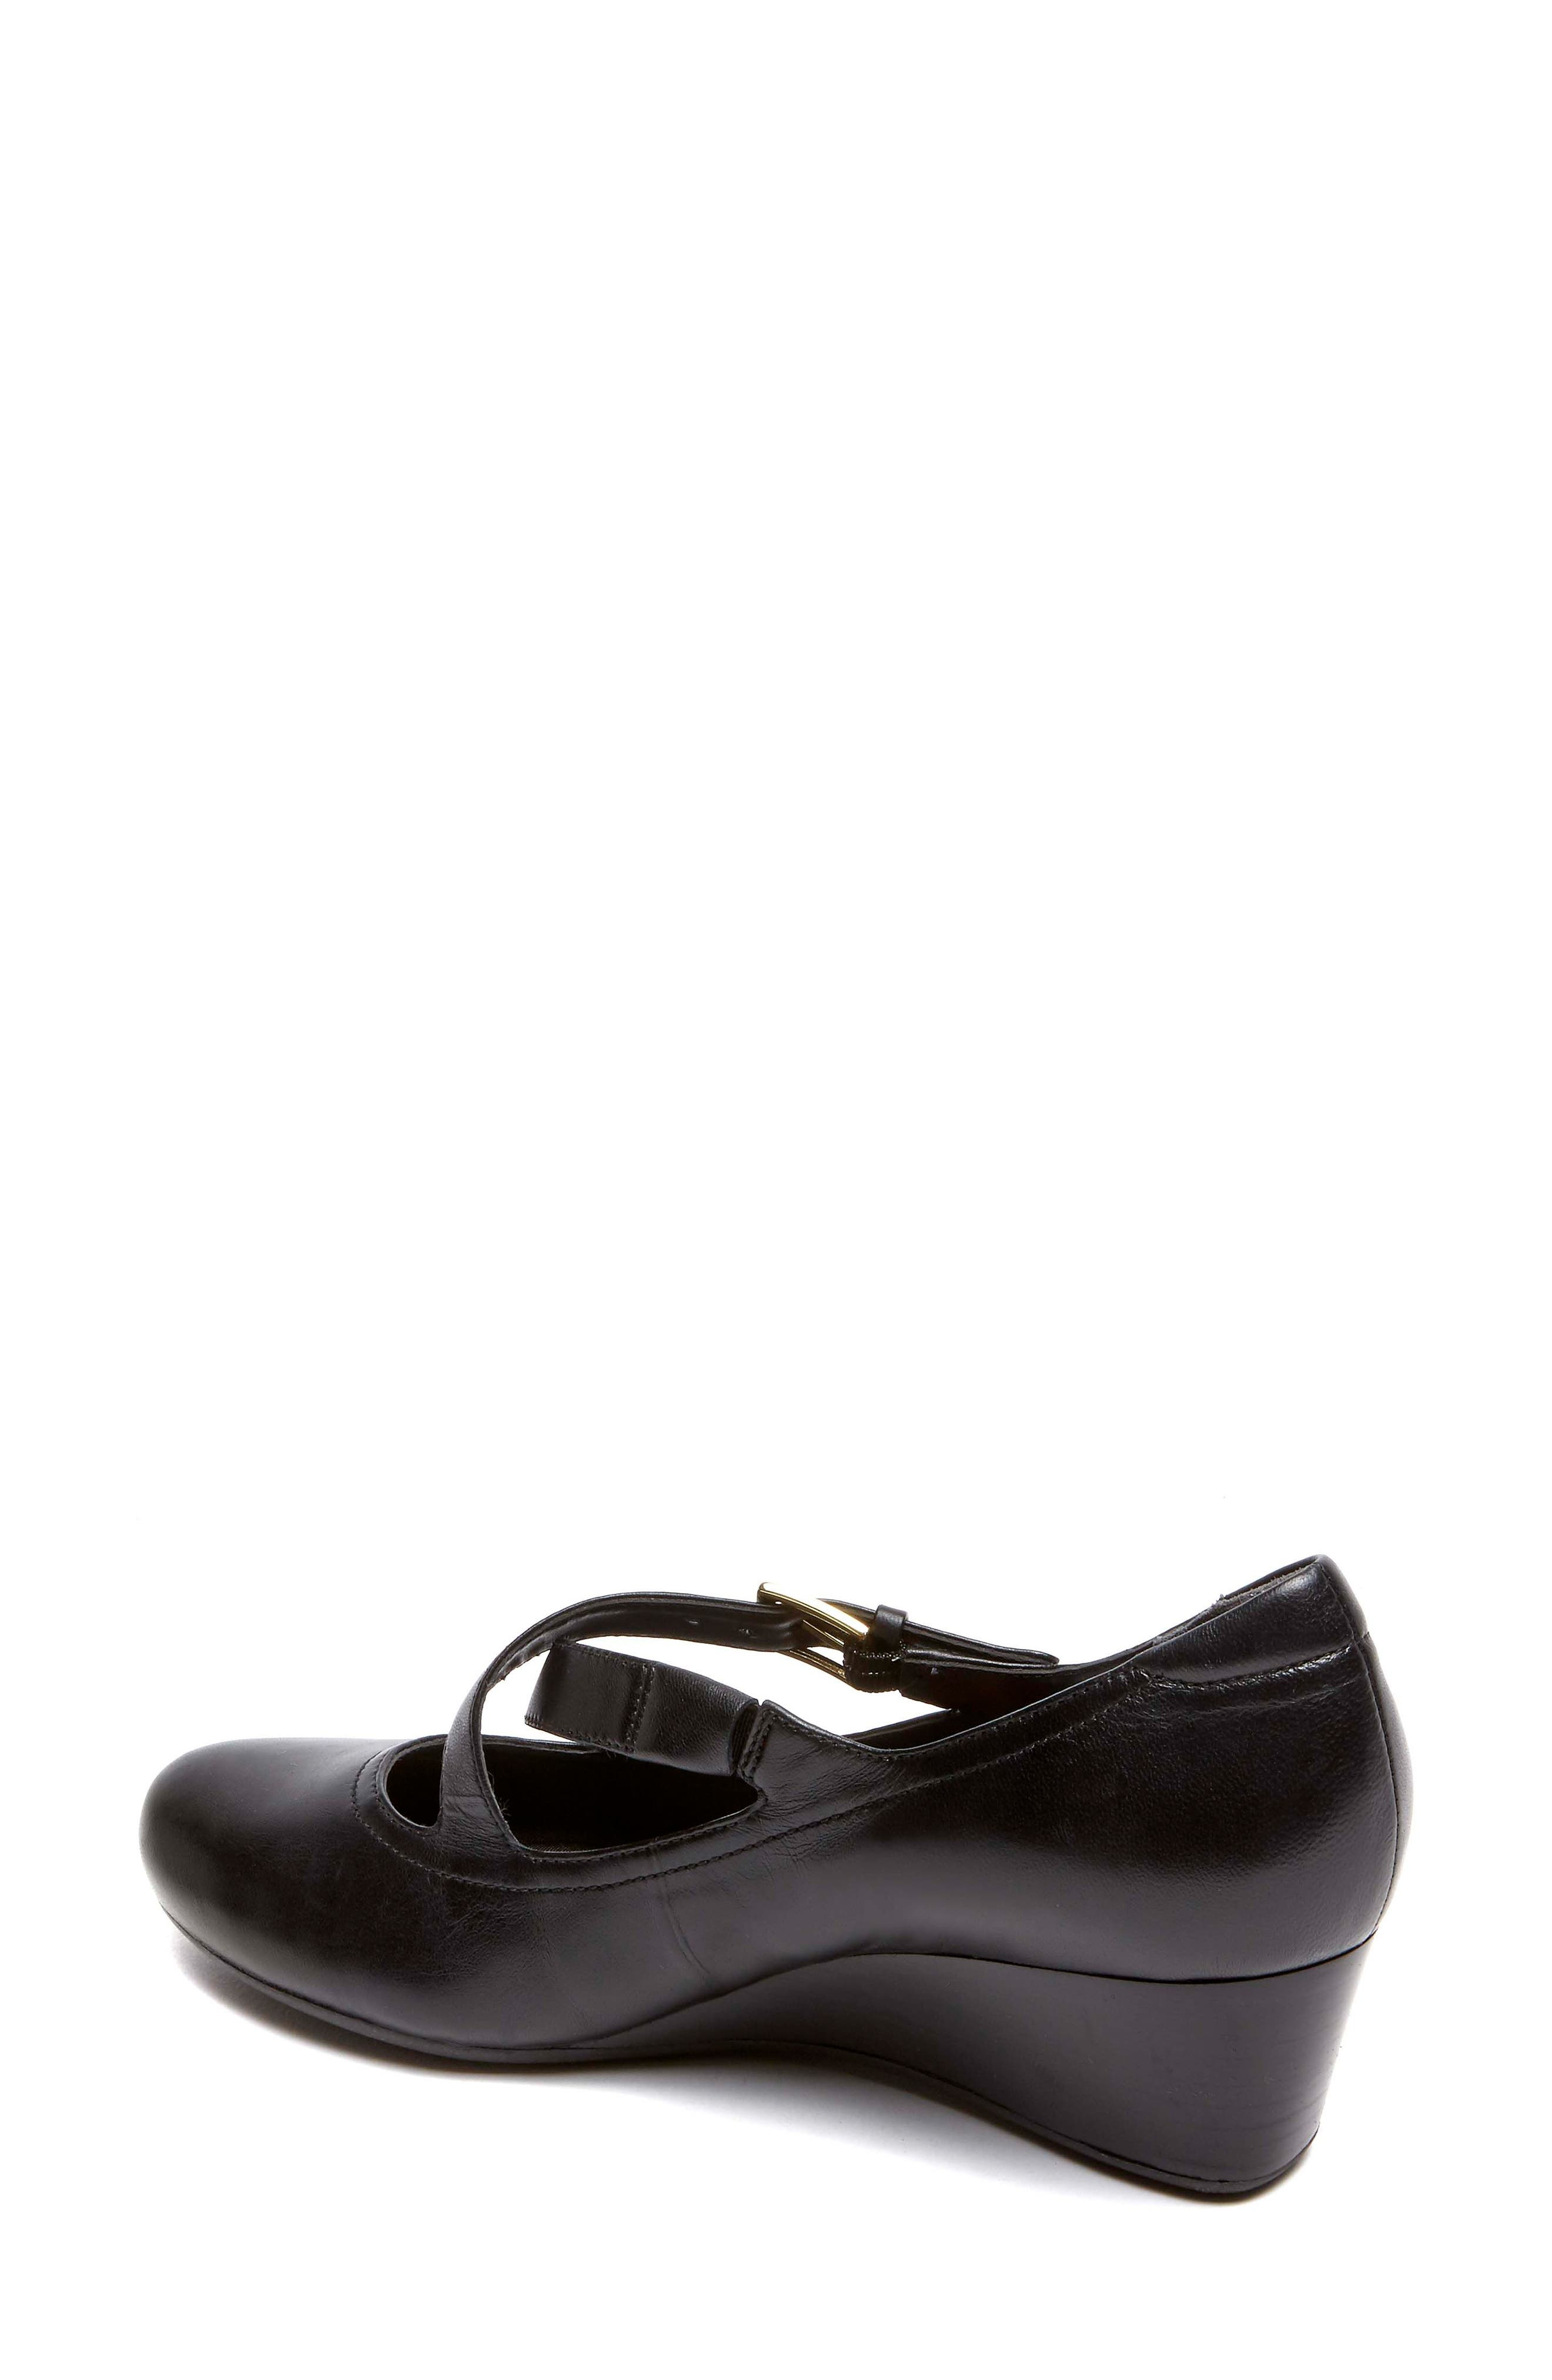 Total Motion Luxe Two-Strap Wedge,                             Alternate thumbnail 2, color,                             Black Leather